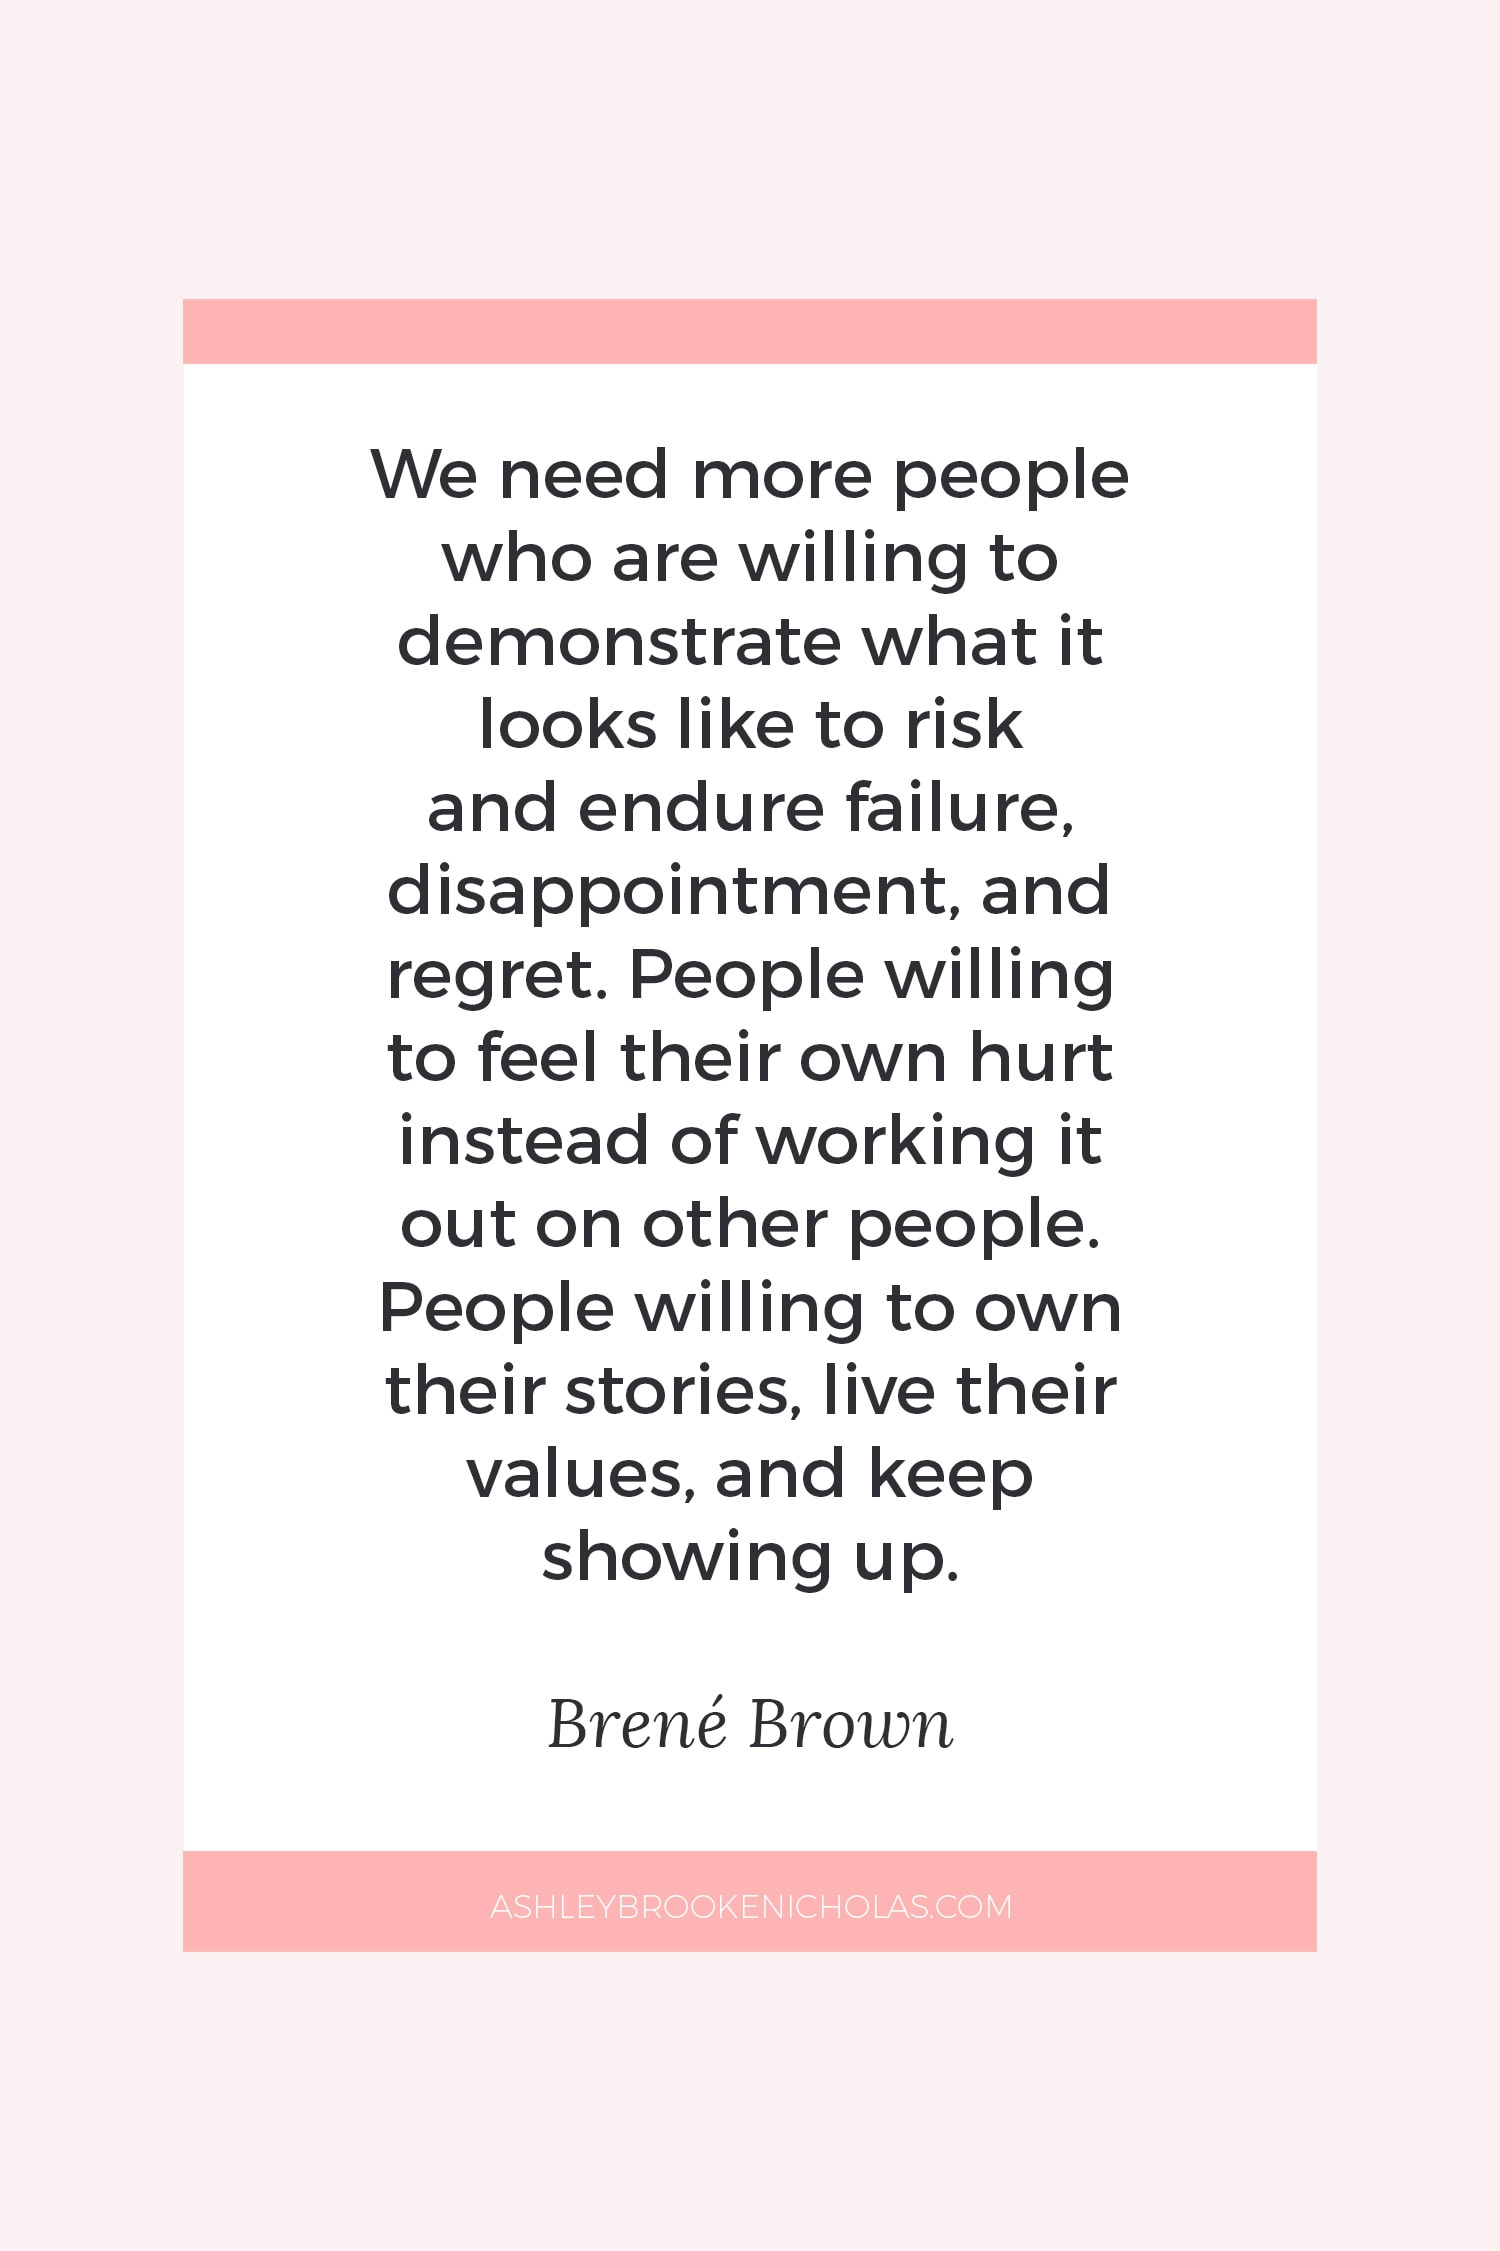 Quotes About Stories The Best Brené Brown Quotes  Ashley Brooke Nicholas